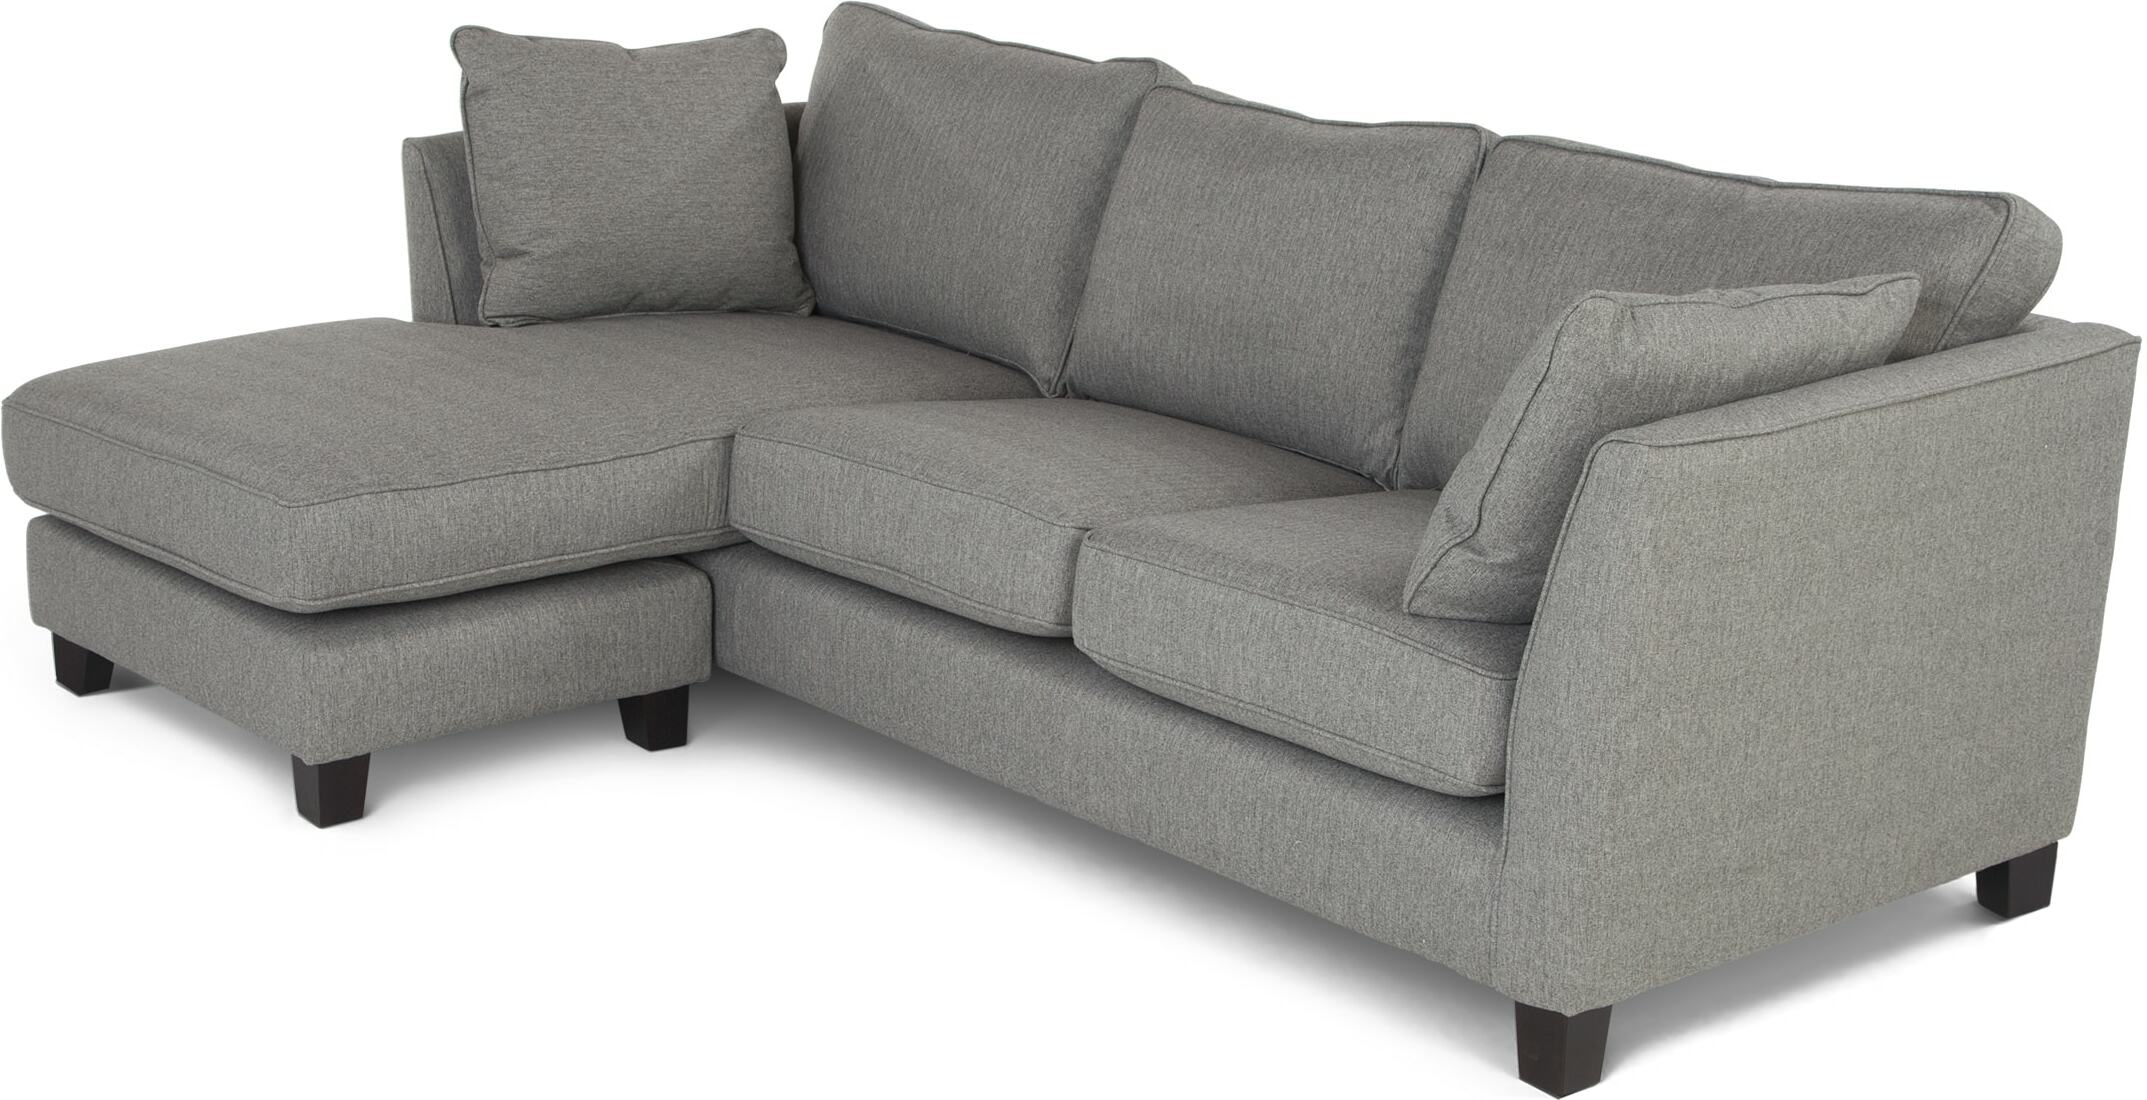 Buy cheap corner sofa compare sofas prices for best uk deals for Cheap sofa set deals